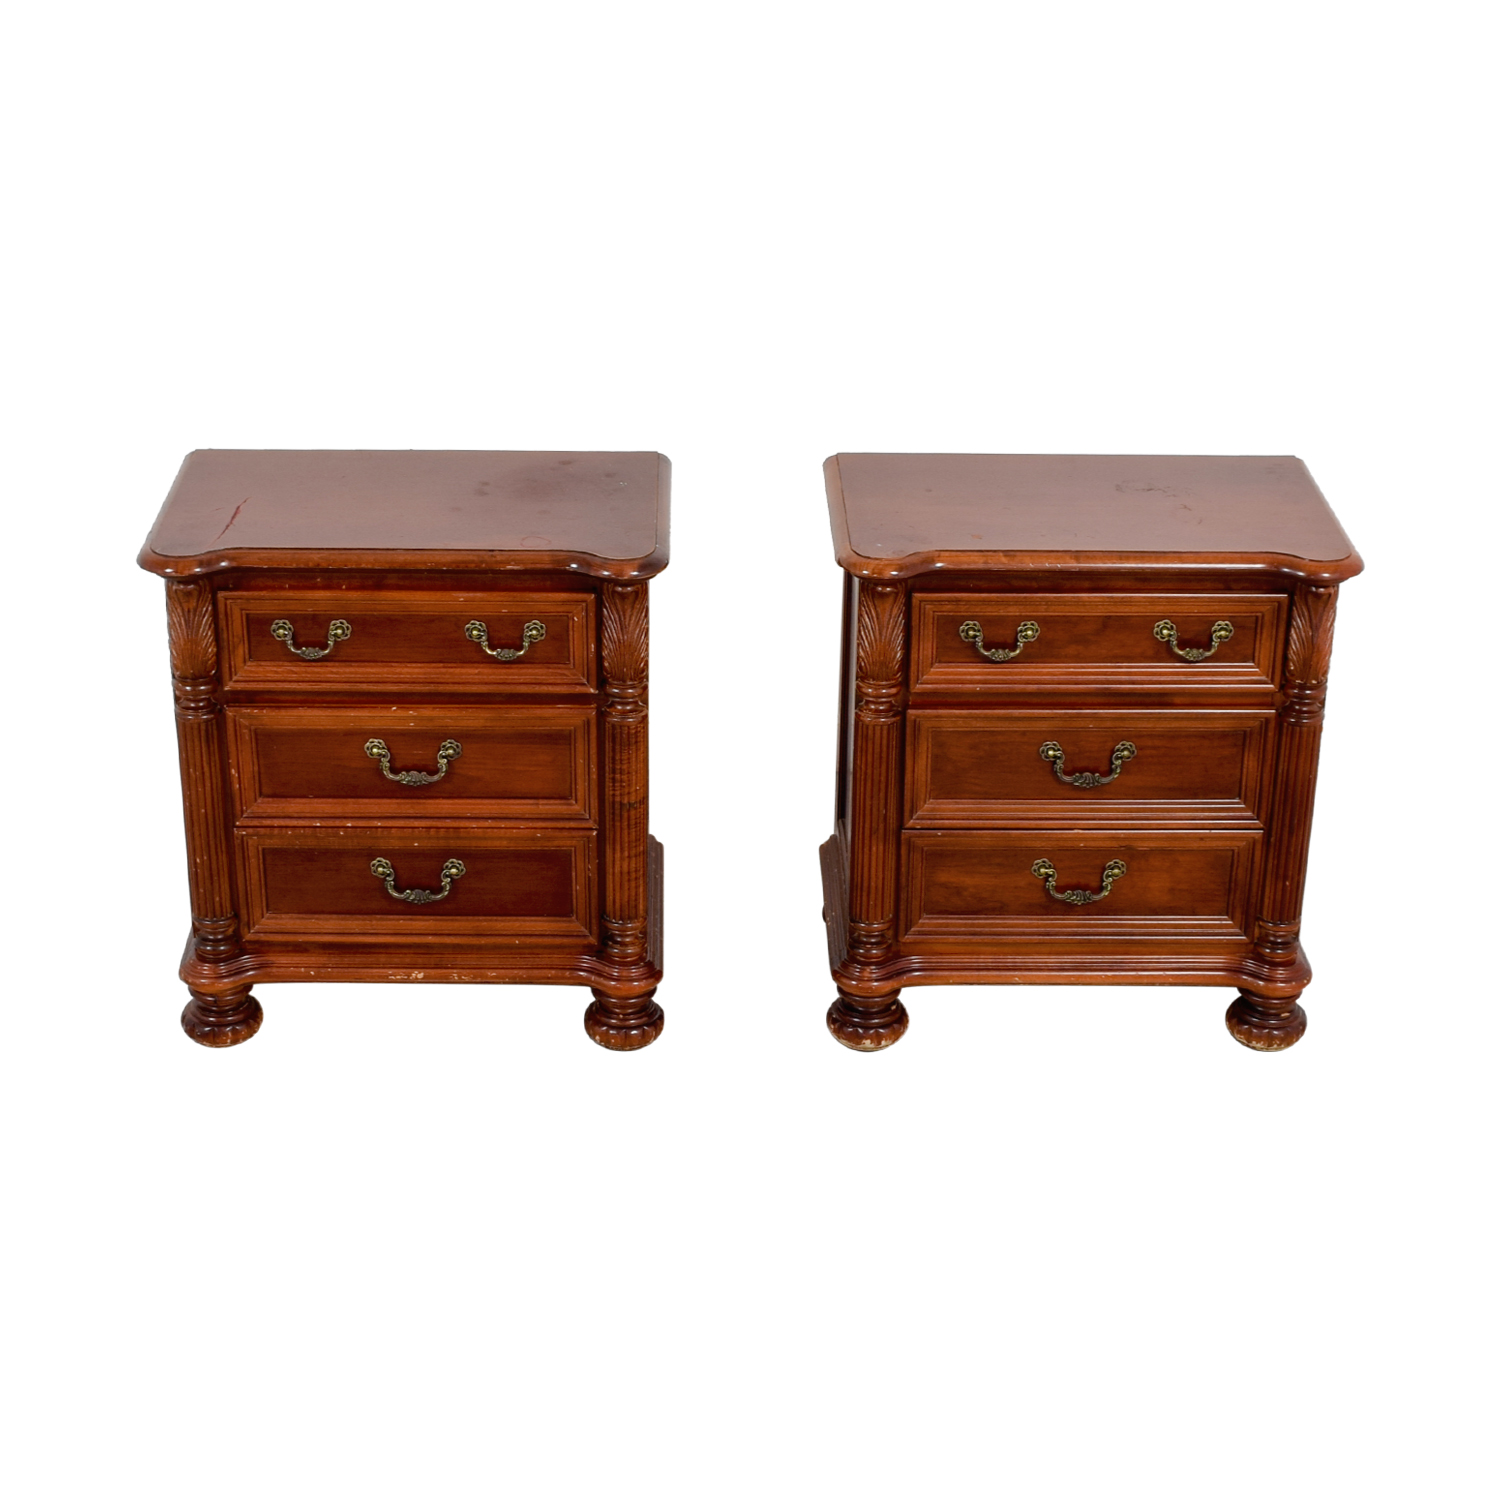 Hooker Furniture Hooker Furniture Three-Drawer Mahogany Night Stands for sale